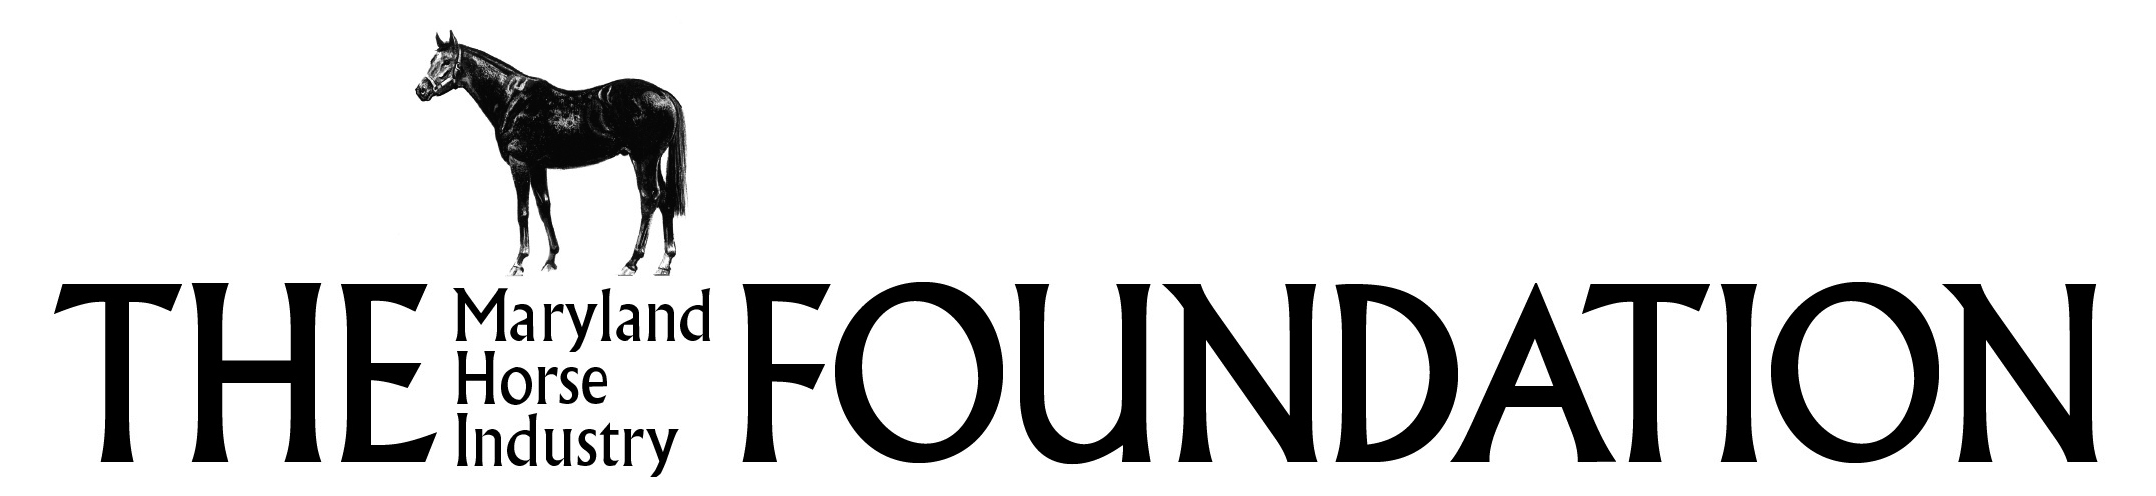 MarylandFoundationLogo.jpg